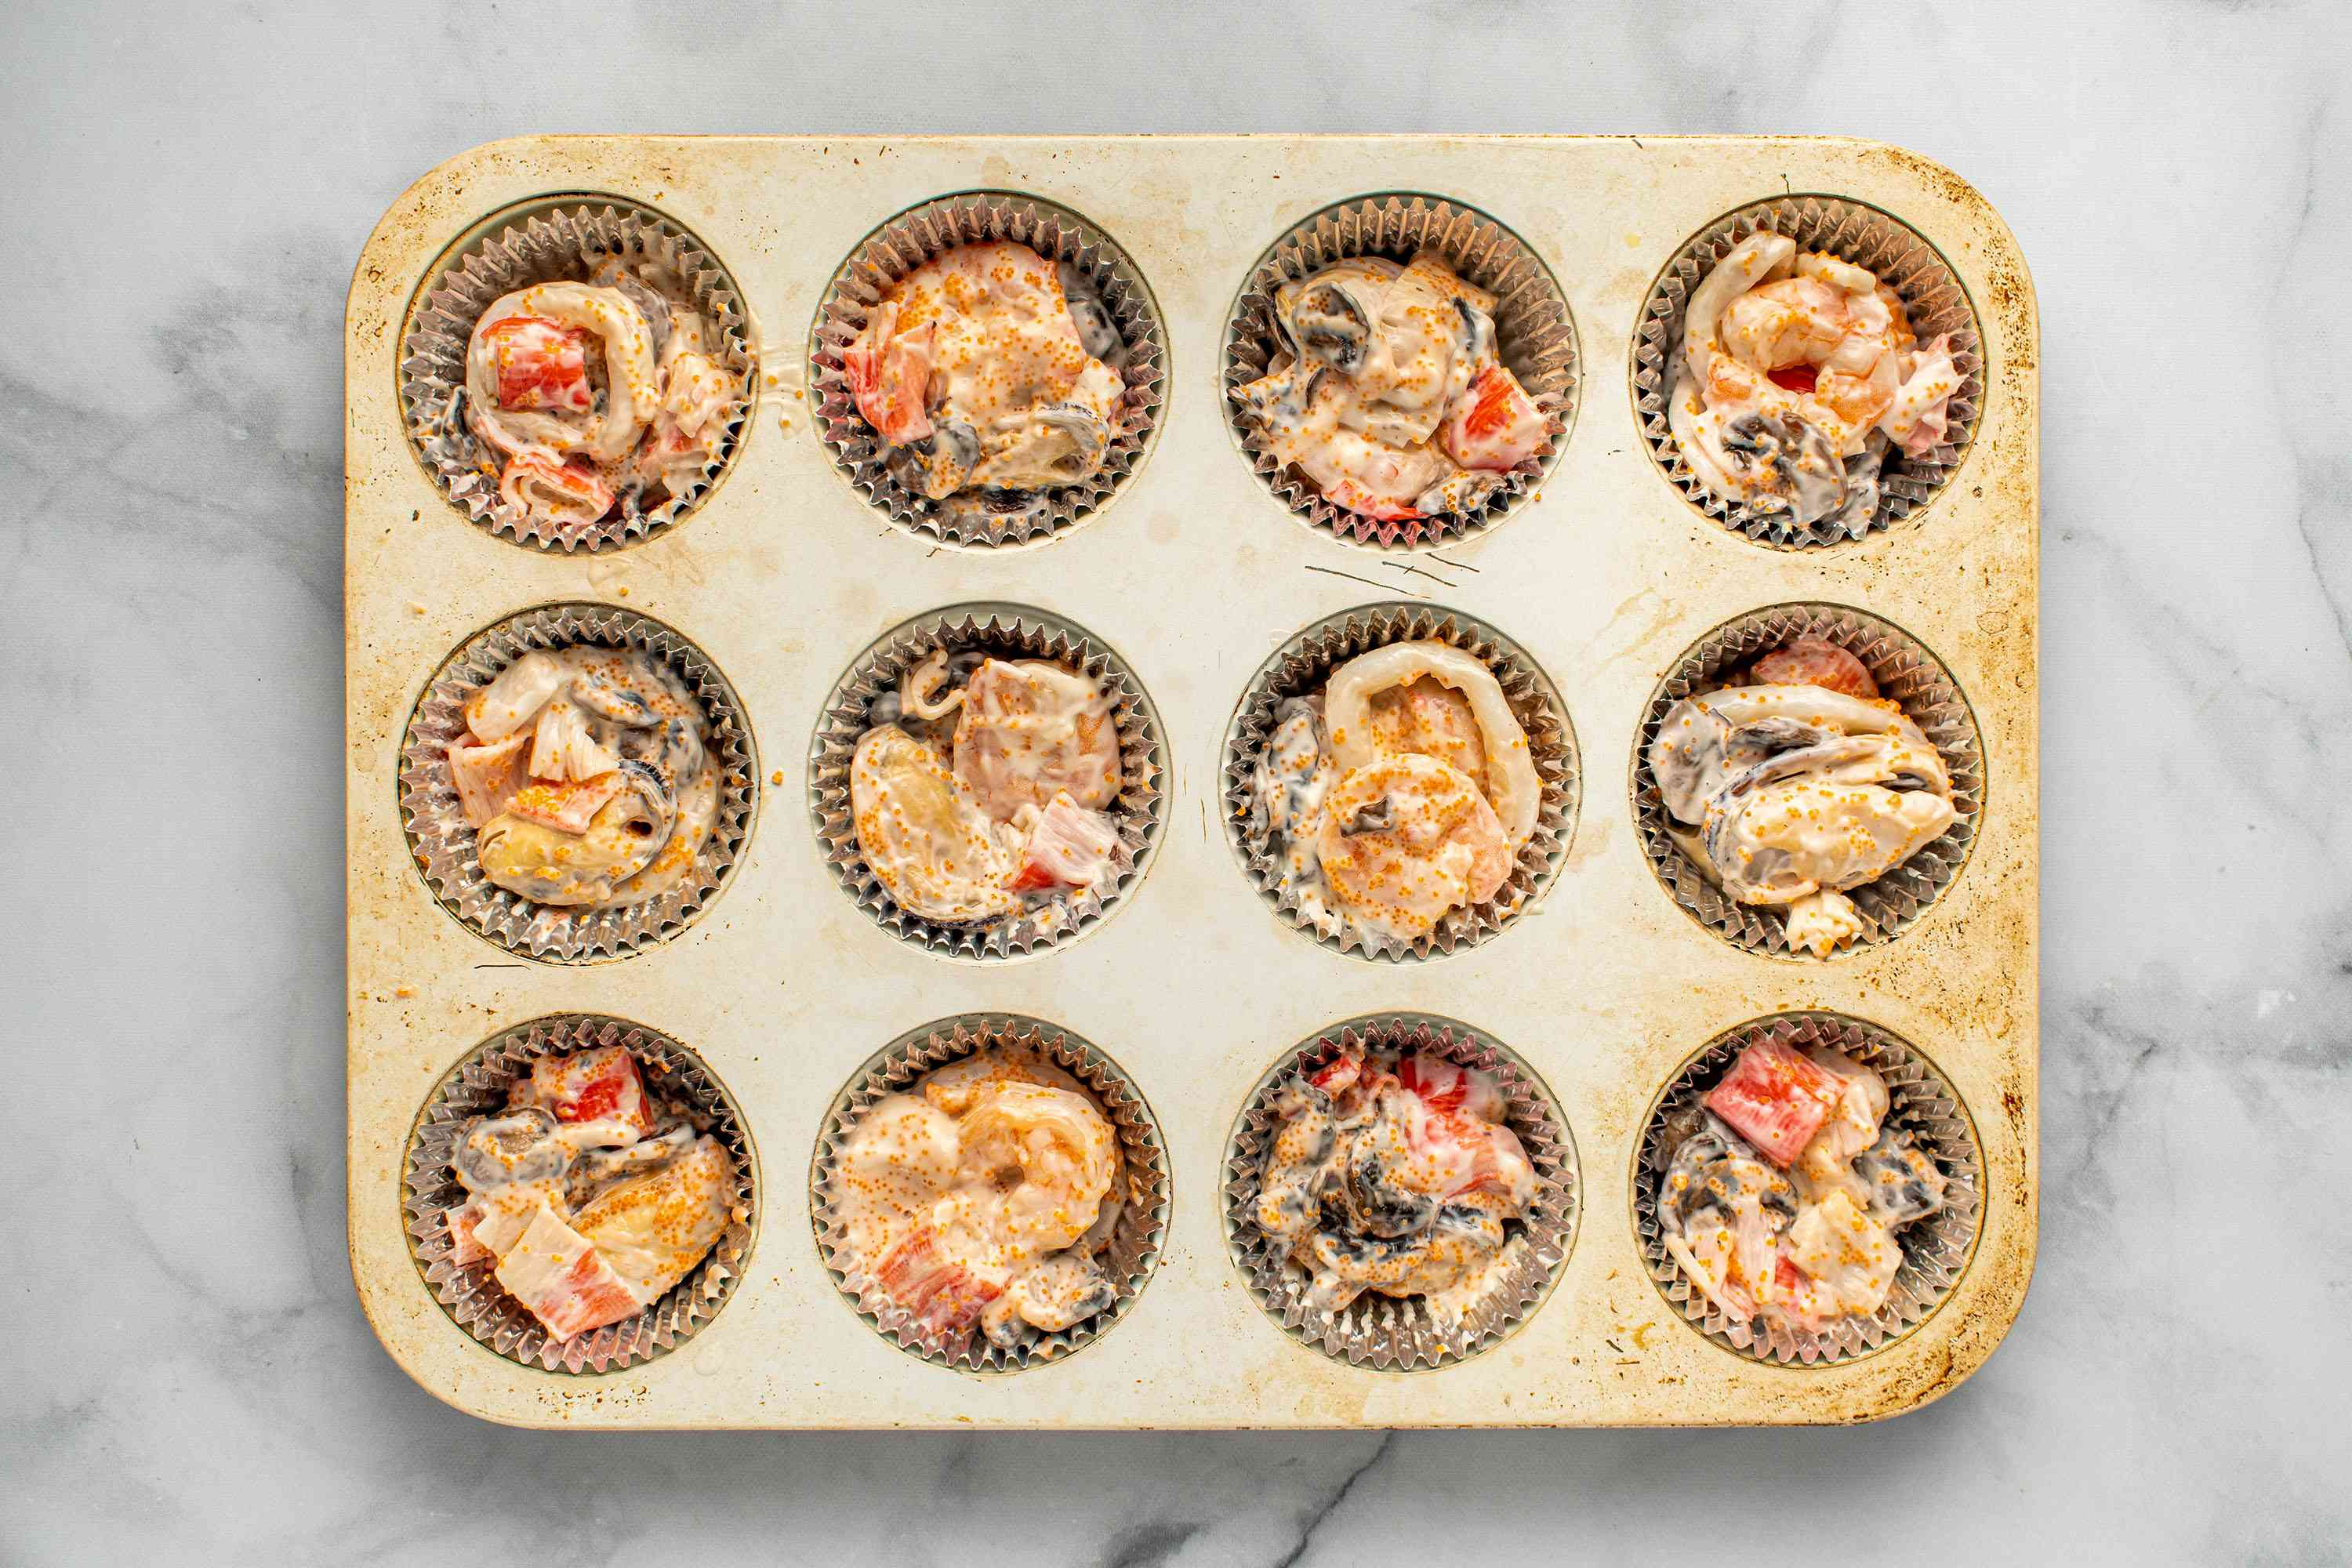 seafood, cooked mushrooms, mayonnaise and masago in a muffin tins